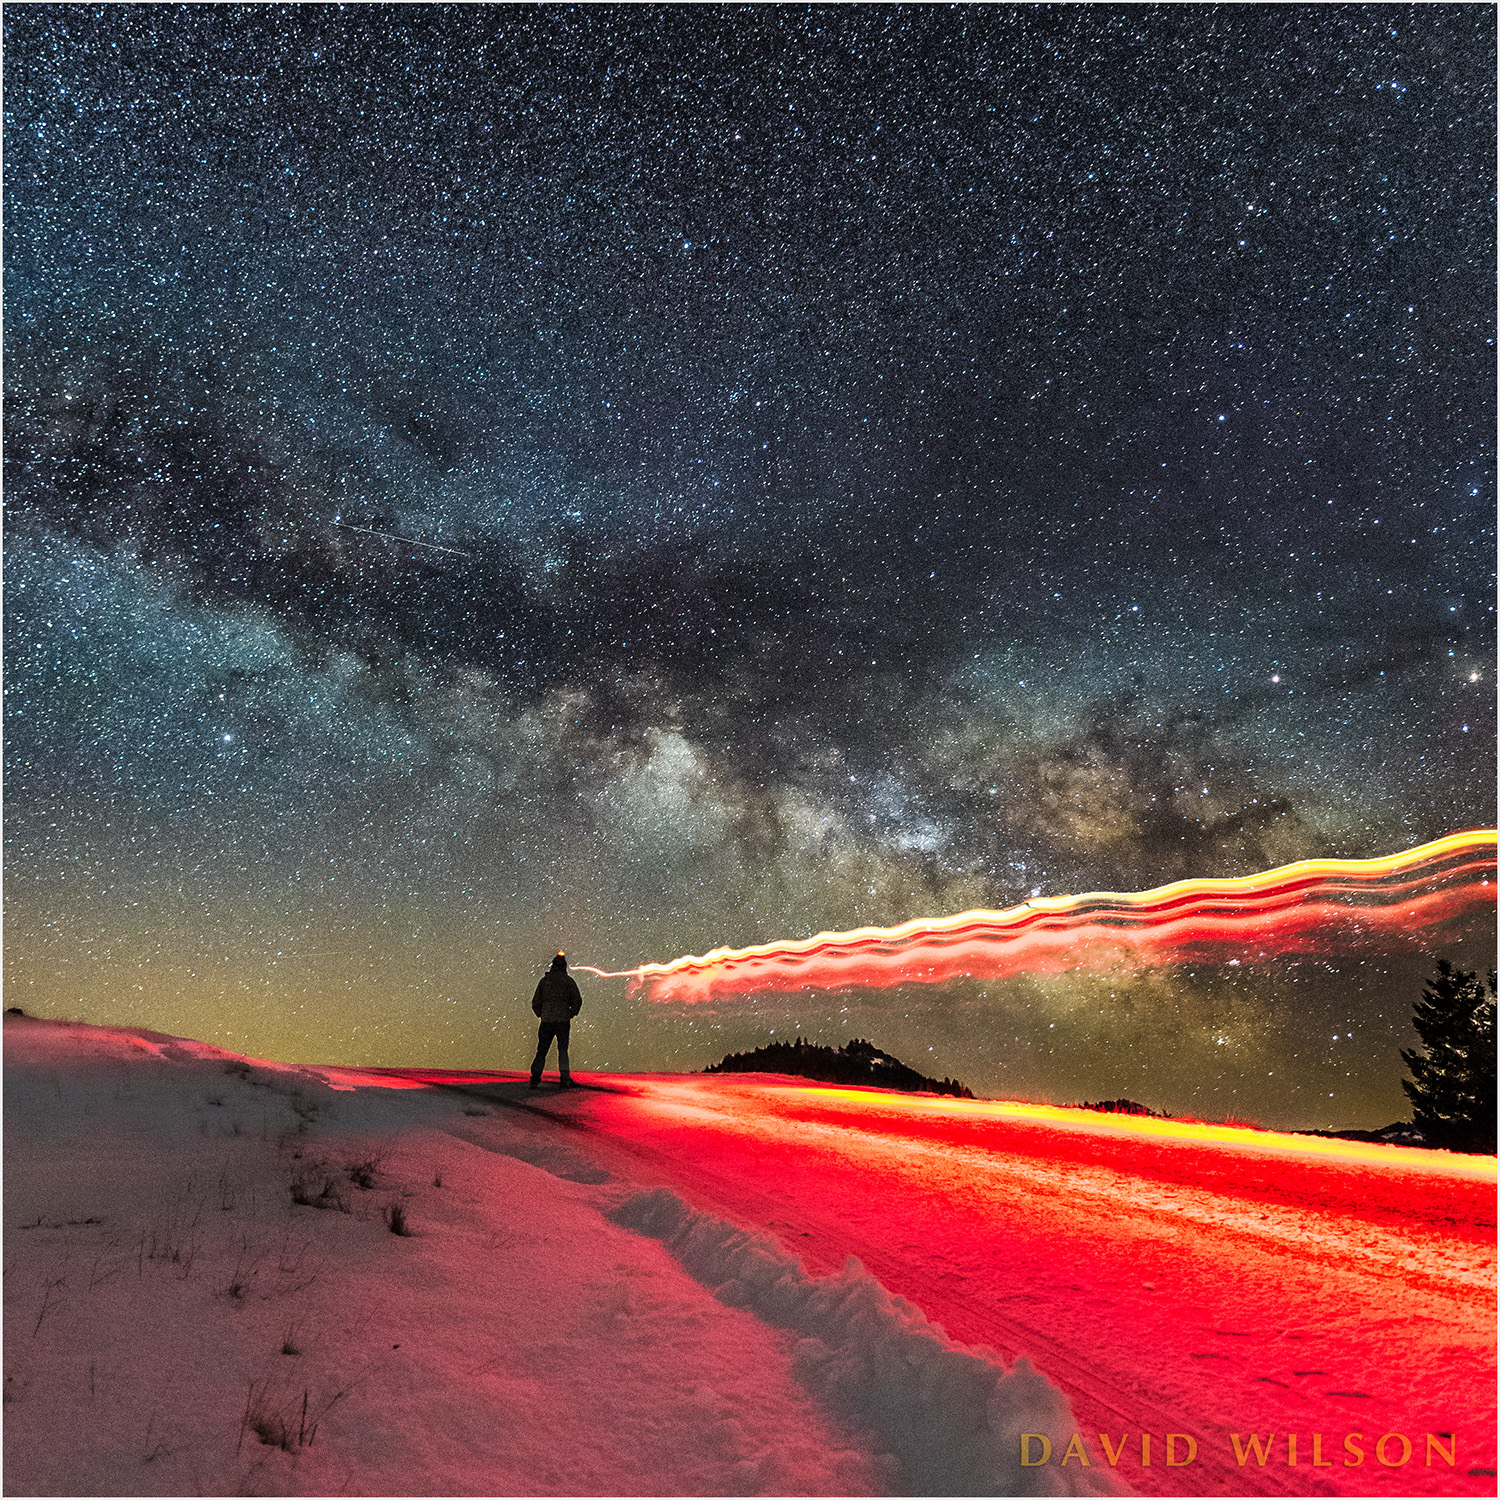 Self Portrait beneath Milky Way with light painting.